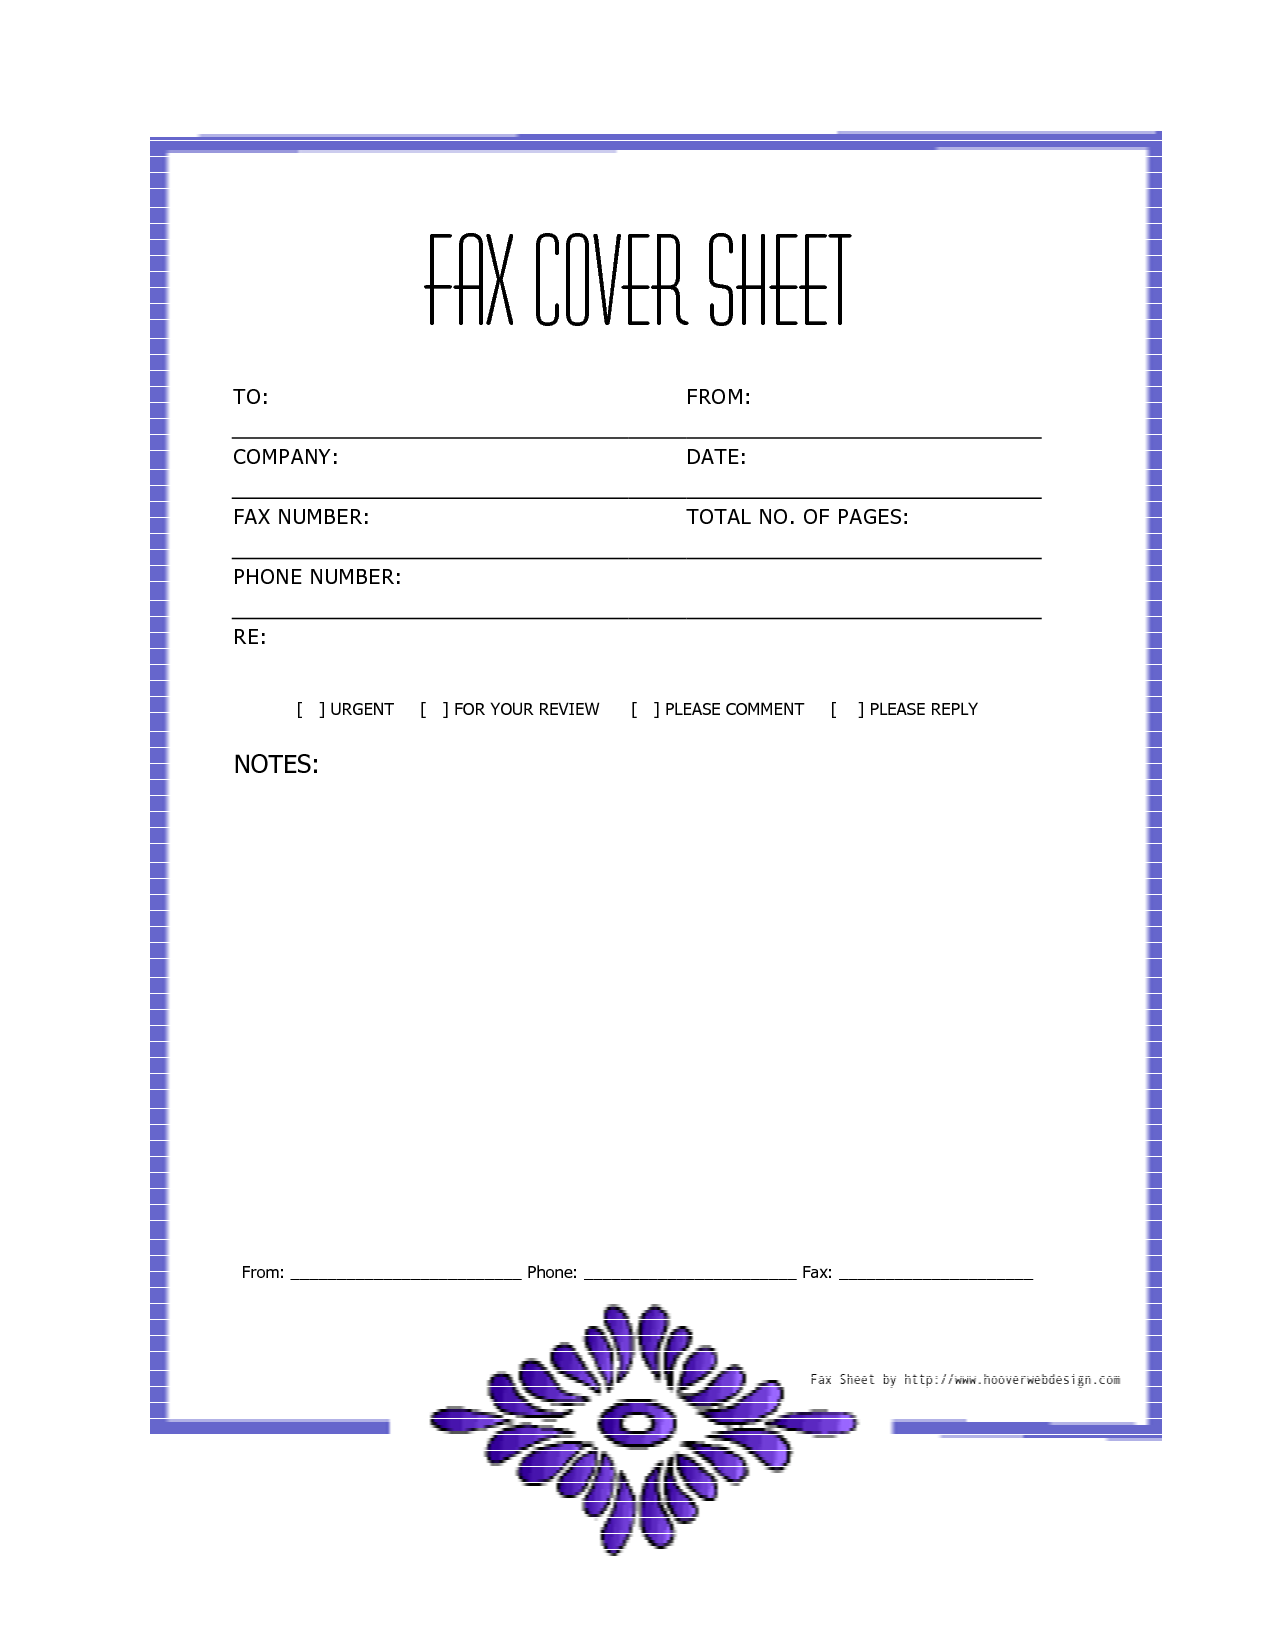 Free Downloads Fax Covers Sheets | Free Printable Fax Cover Sheet Template  Elegant   Download As  Fax Templates For Word